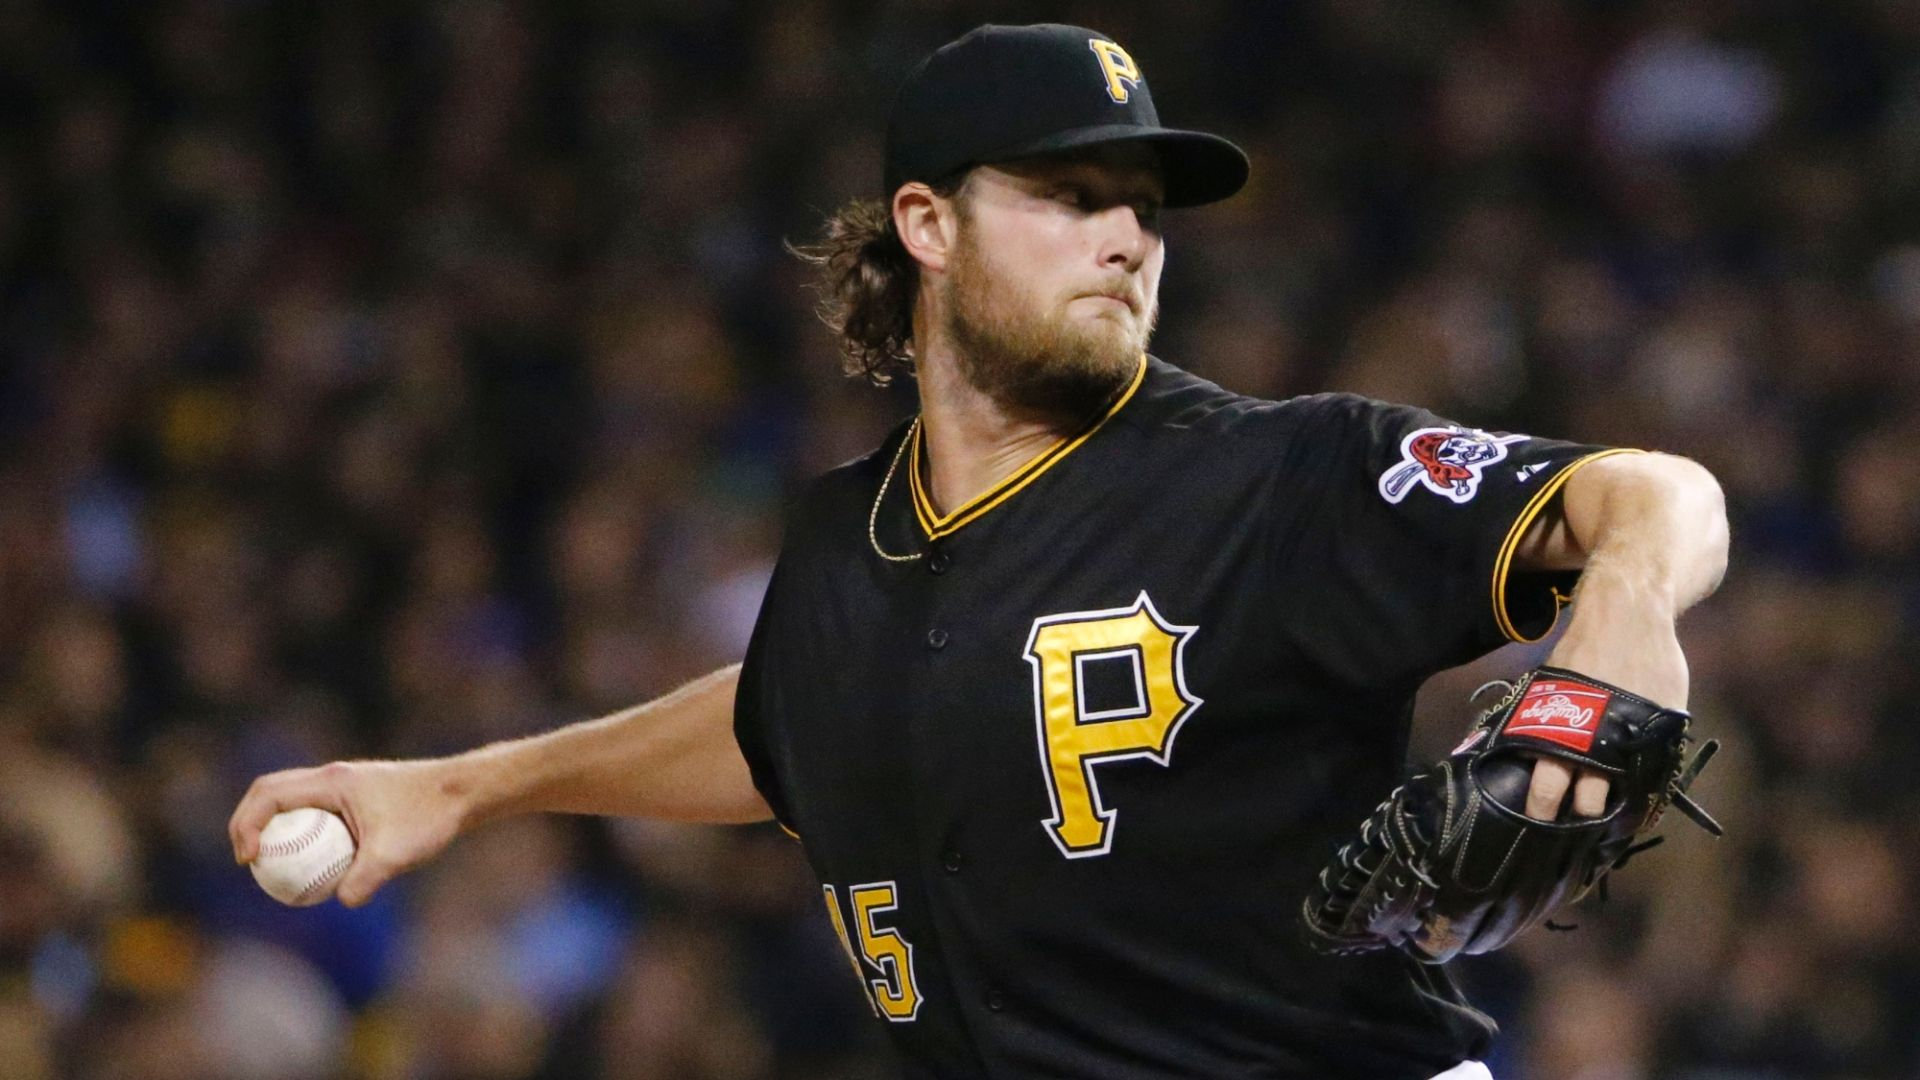 https://secure.espncdn.com/combiner/i?img=/media/motion/2016/0229/dm_160229_mlb_mm_on_gerrit_cole/dm_160229_mlb_mm_on_gerrit_cole.jpg